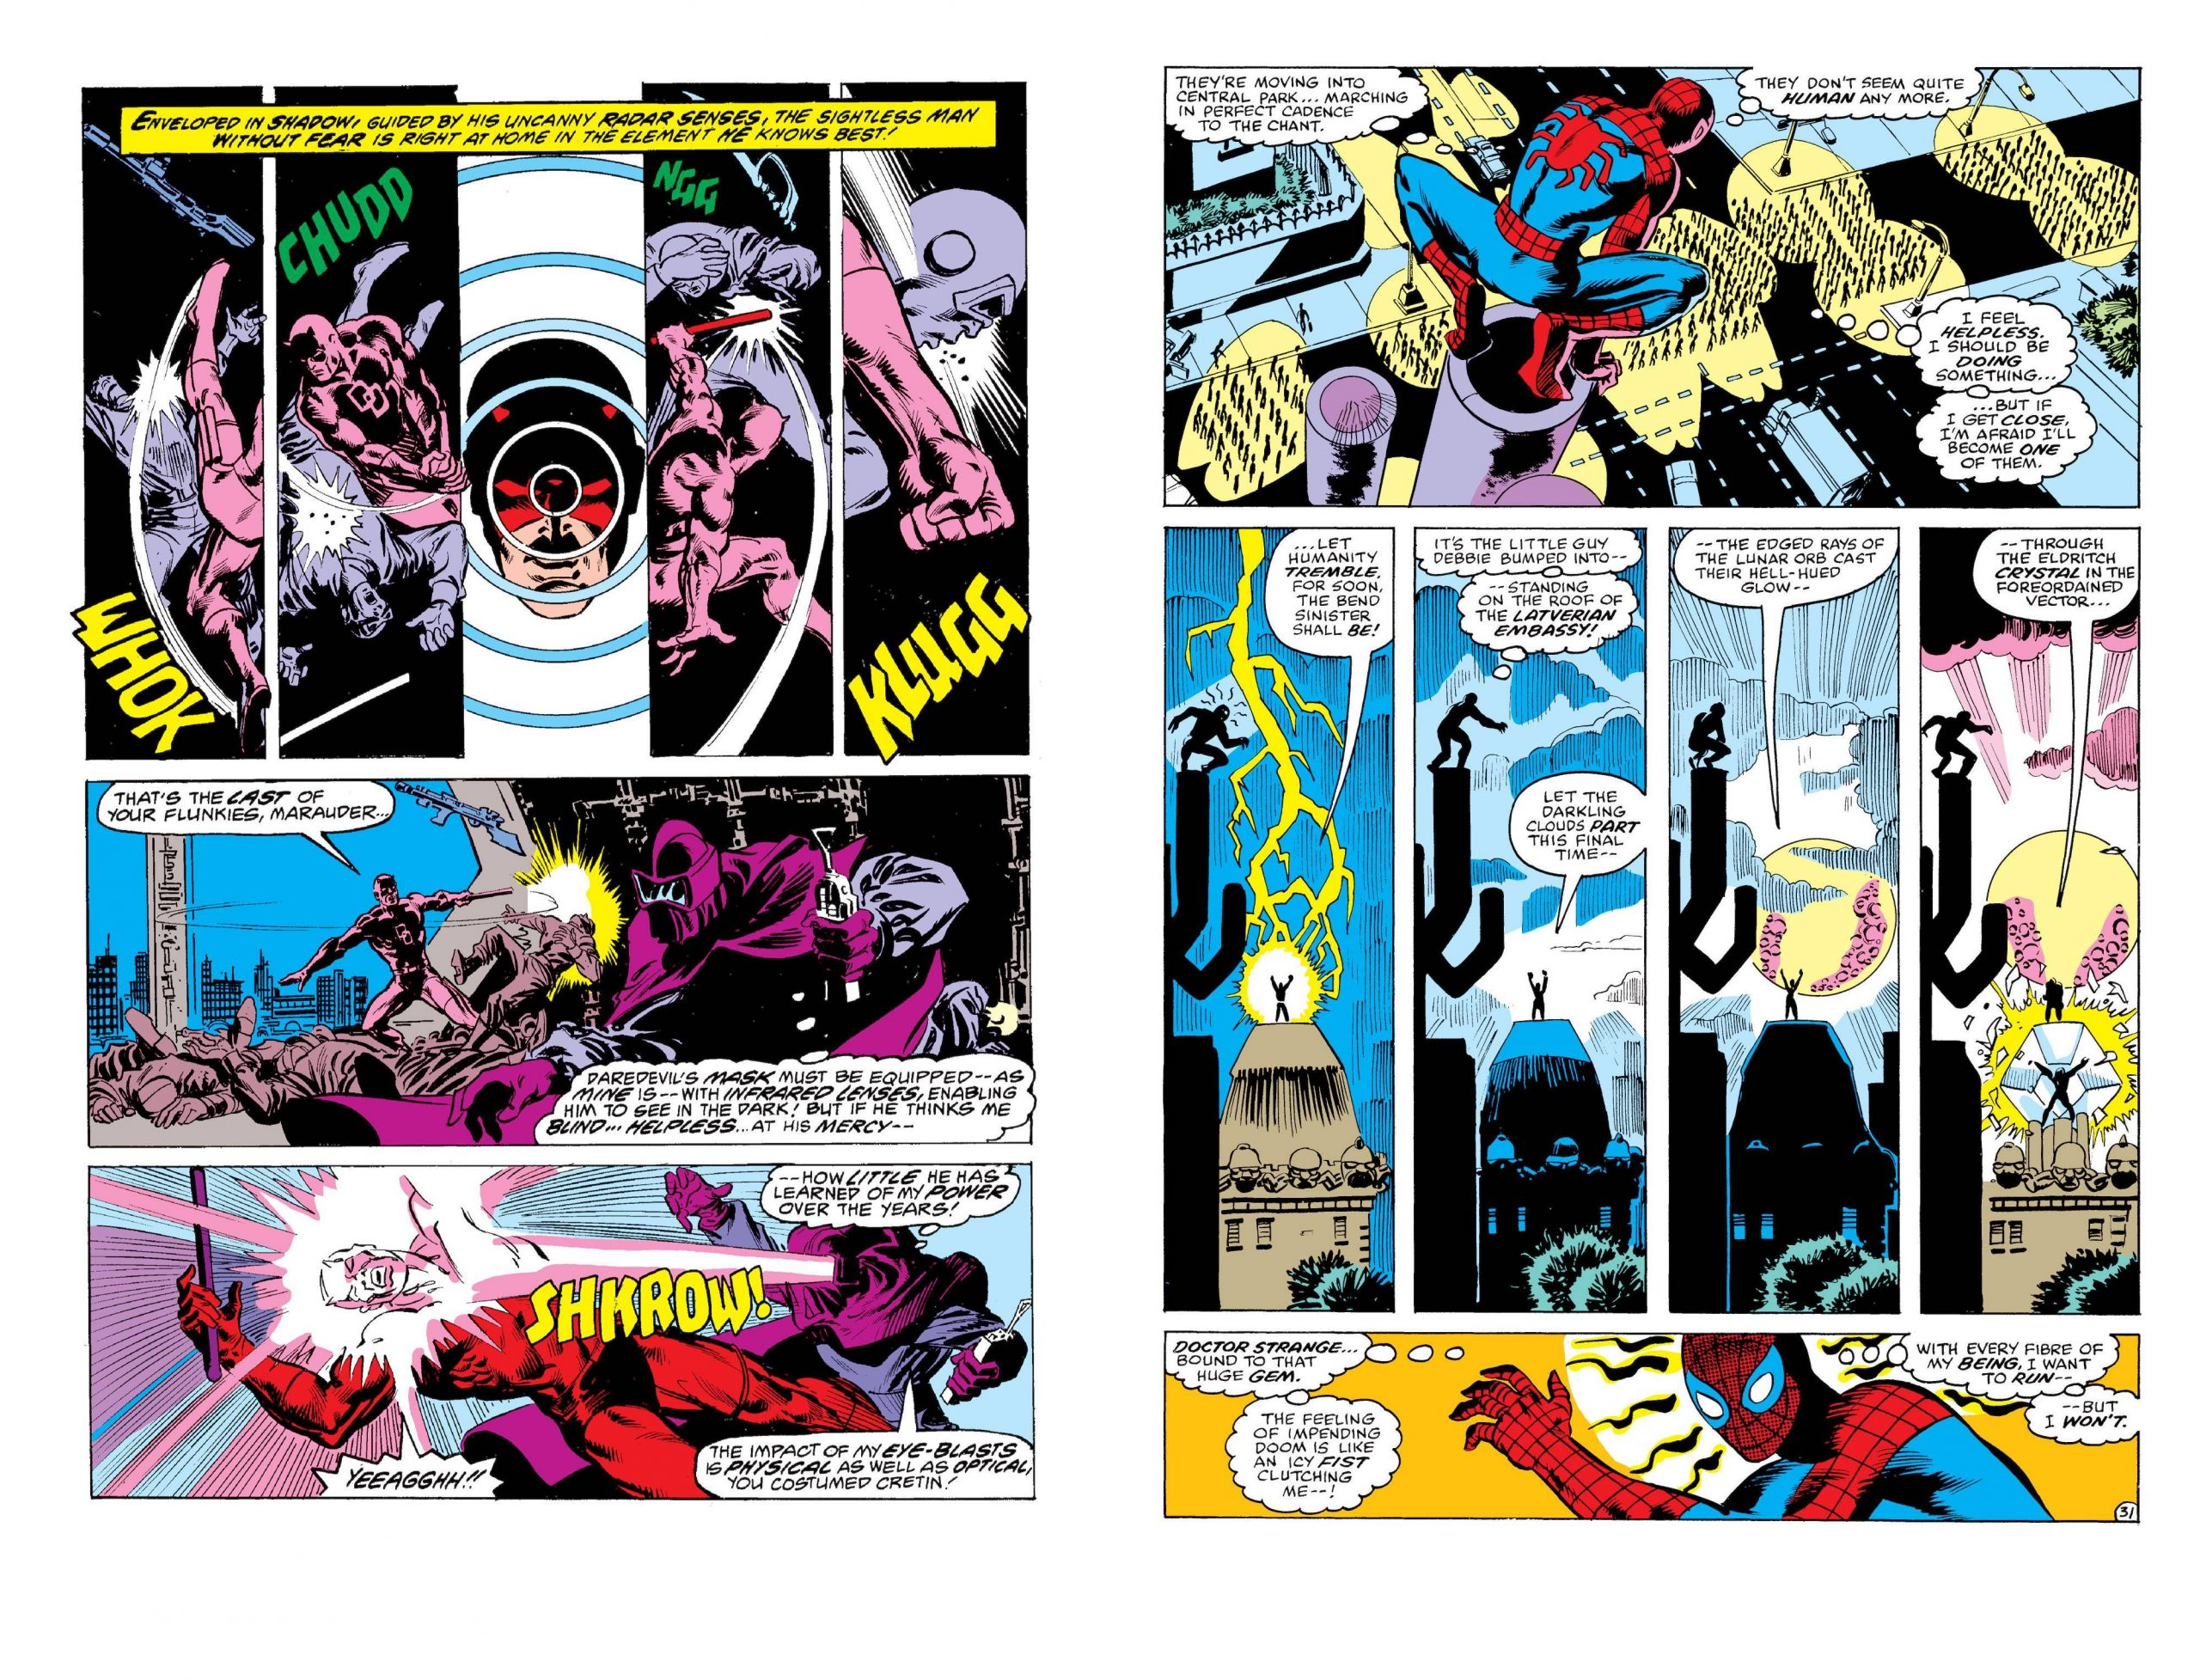 The Complete Frank Miller Spider-Man review